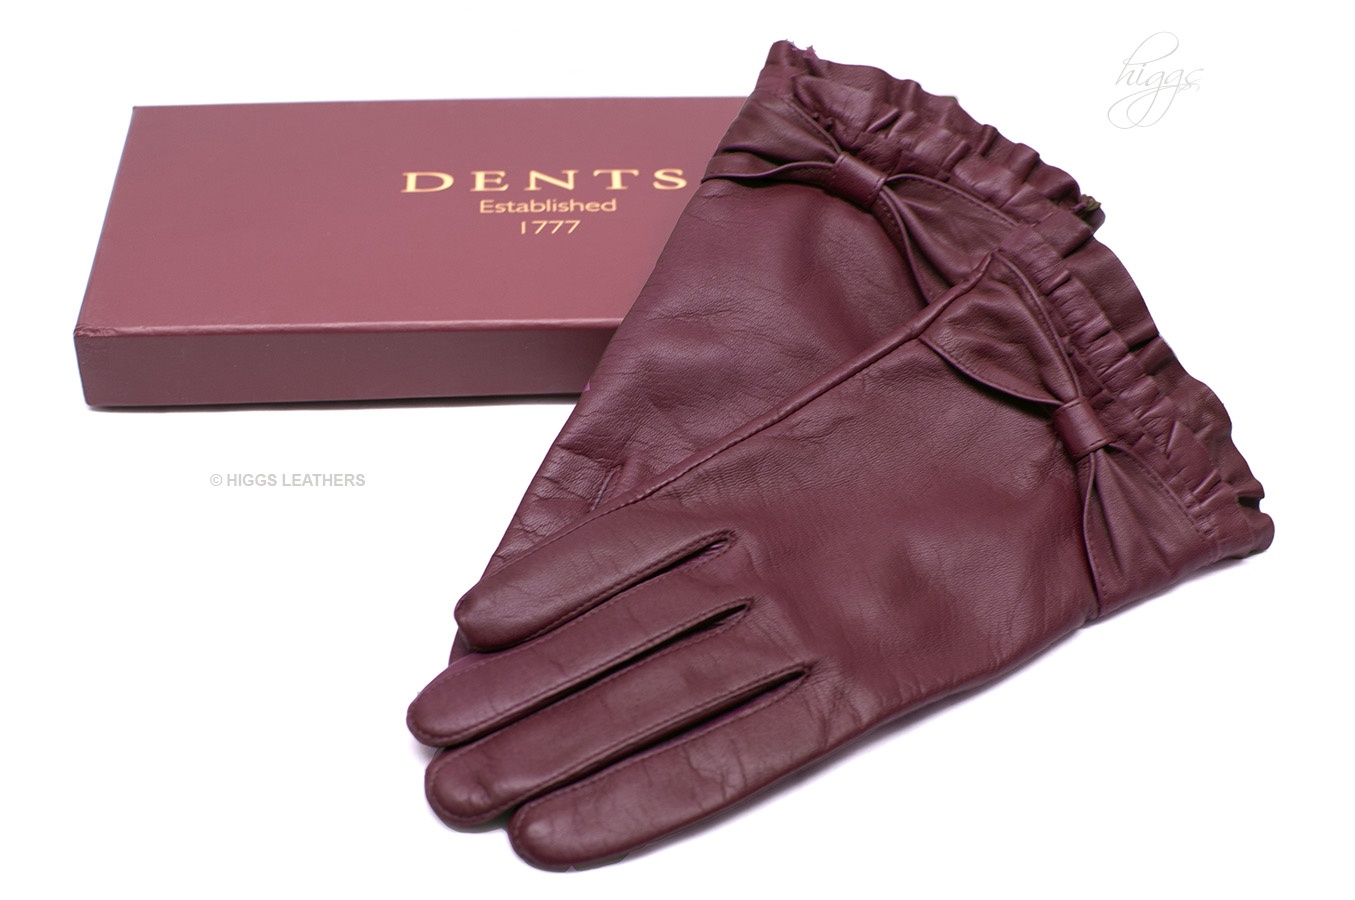 Buy ladies leather gloves online - Style 74003 Ladies Pleated Wrist Leather Gloves